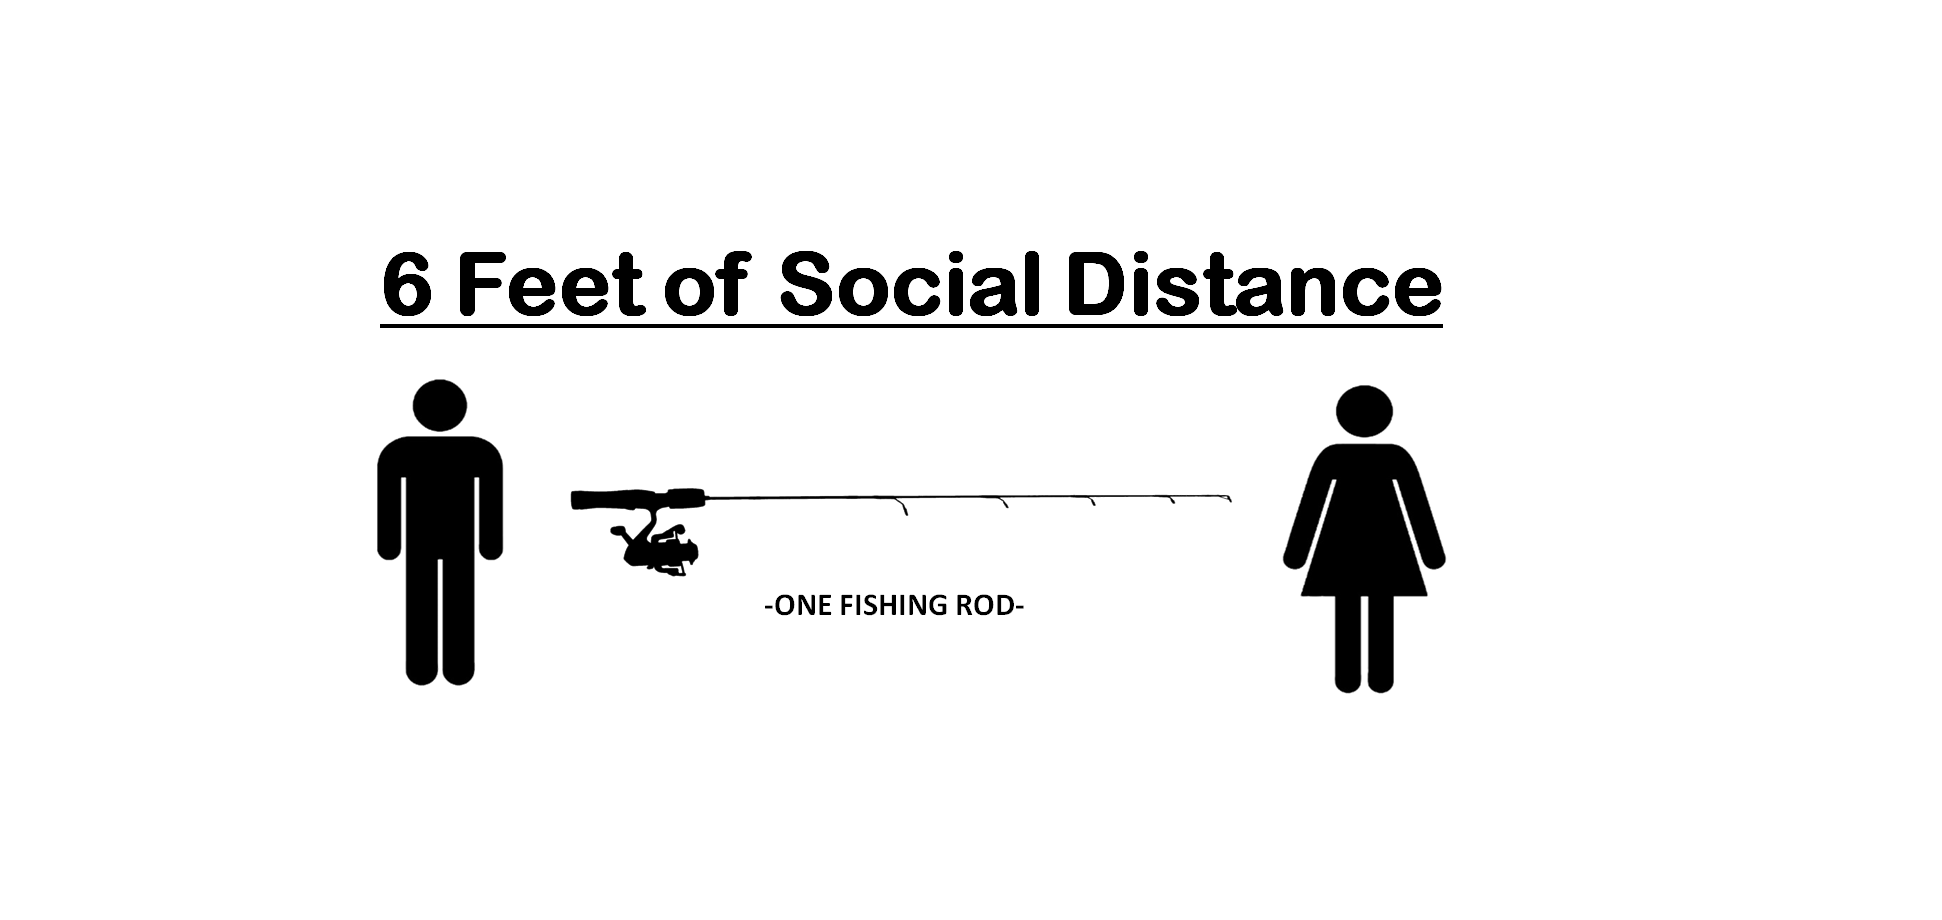 Social Distance- One 6-Foot Fishing Rod Away